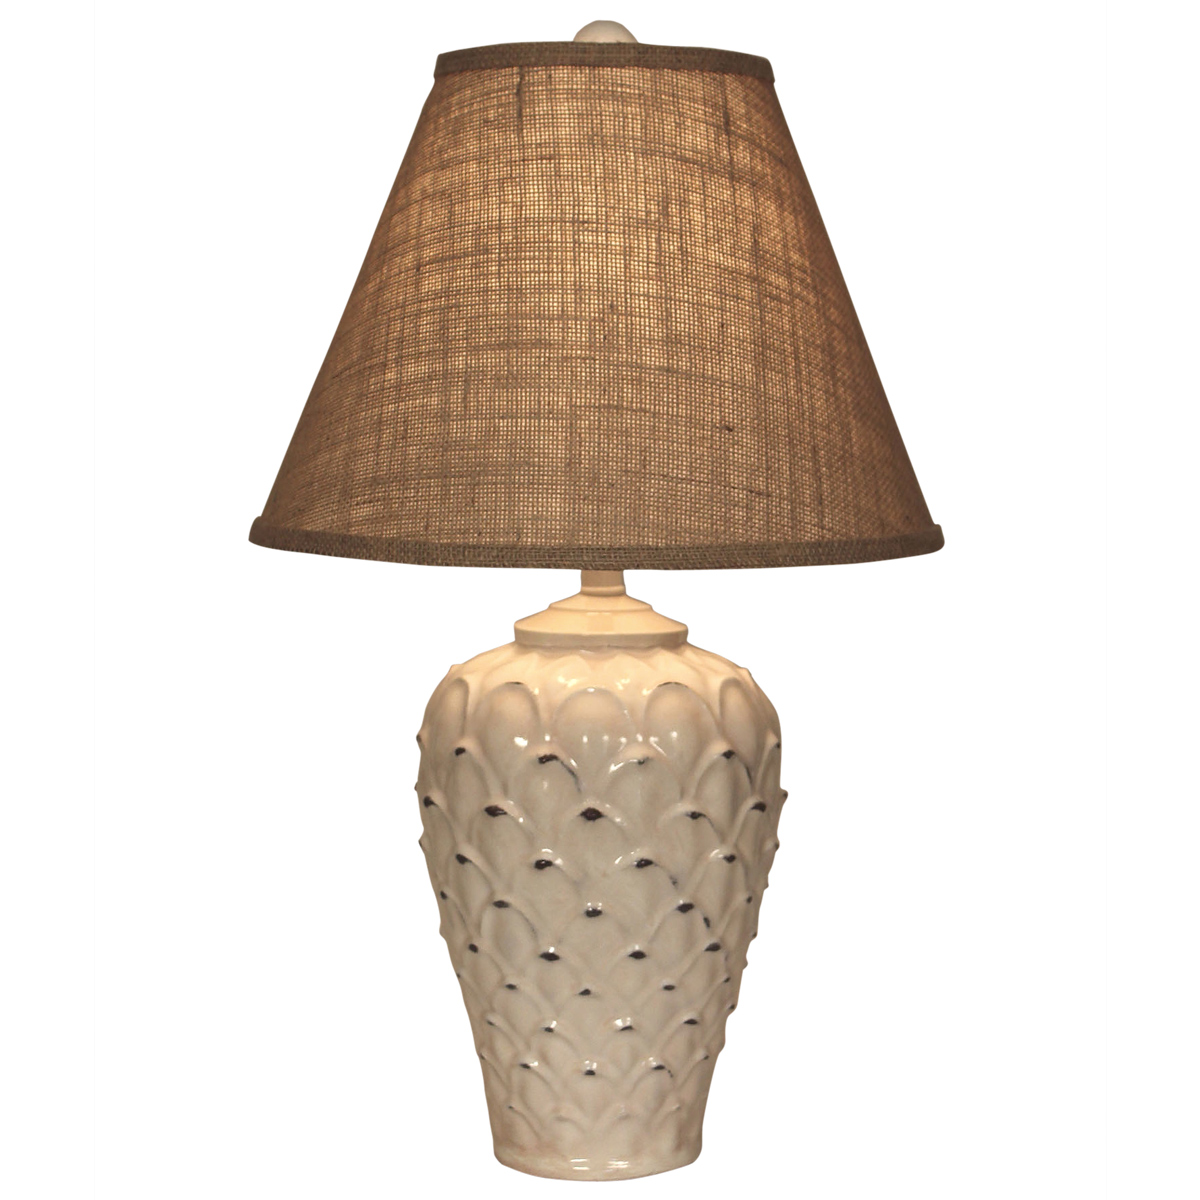 Ecru Feather Pot Table Lamp